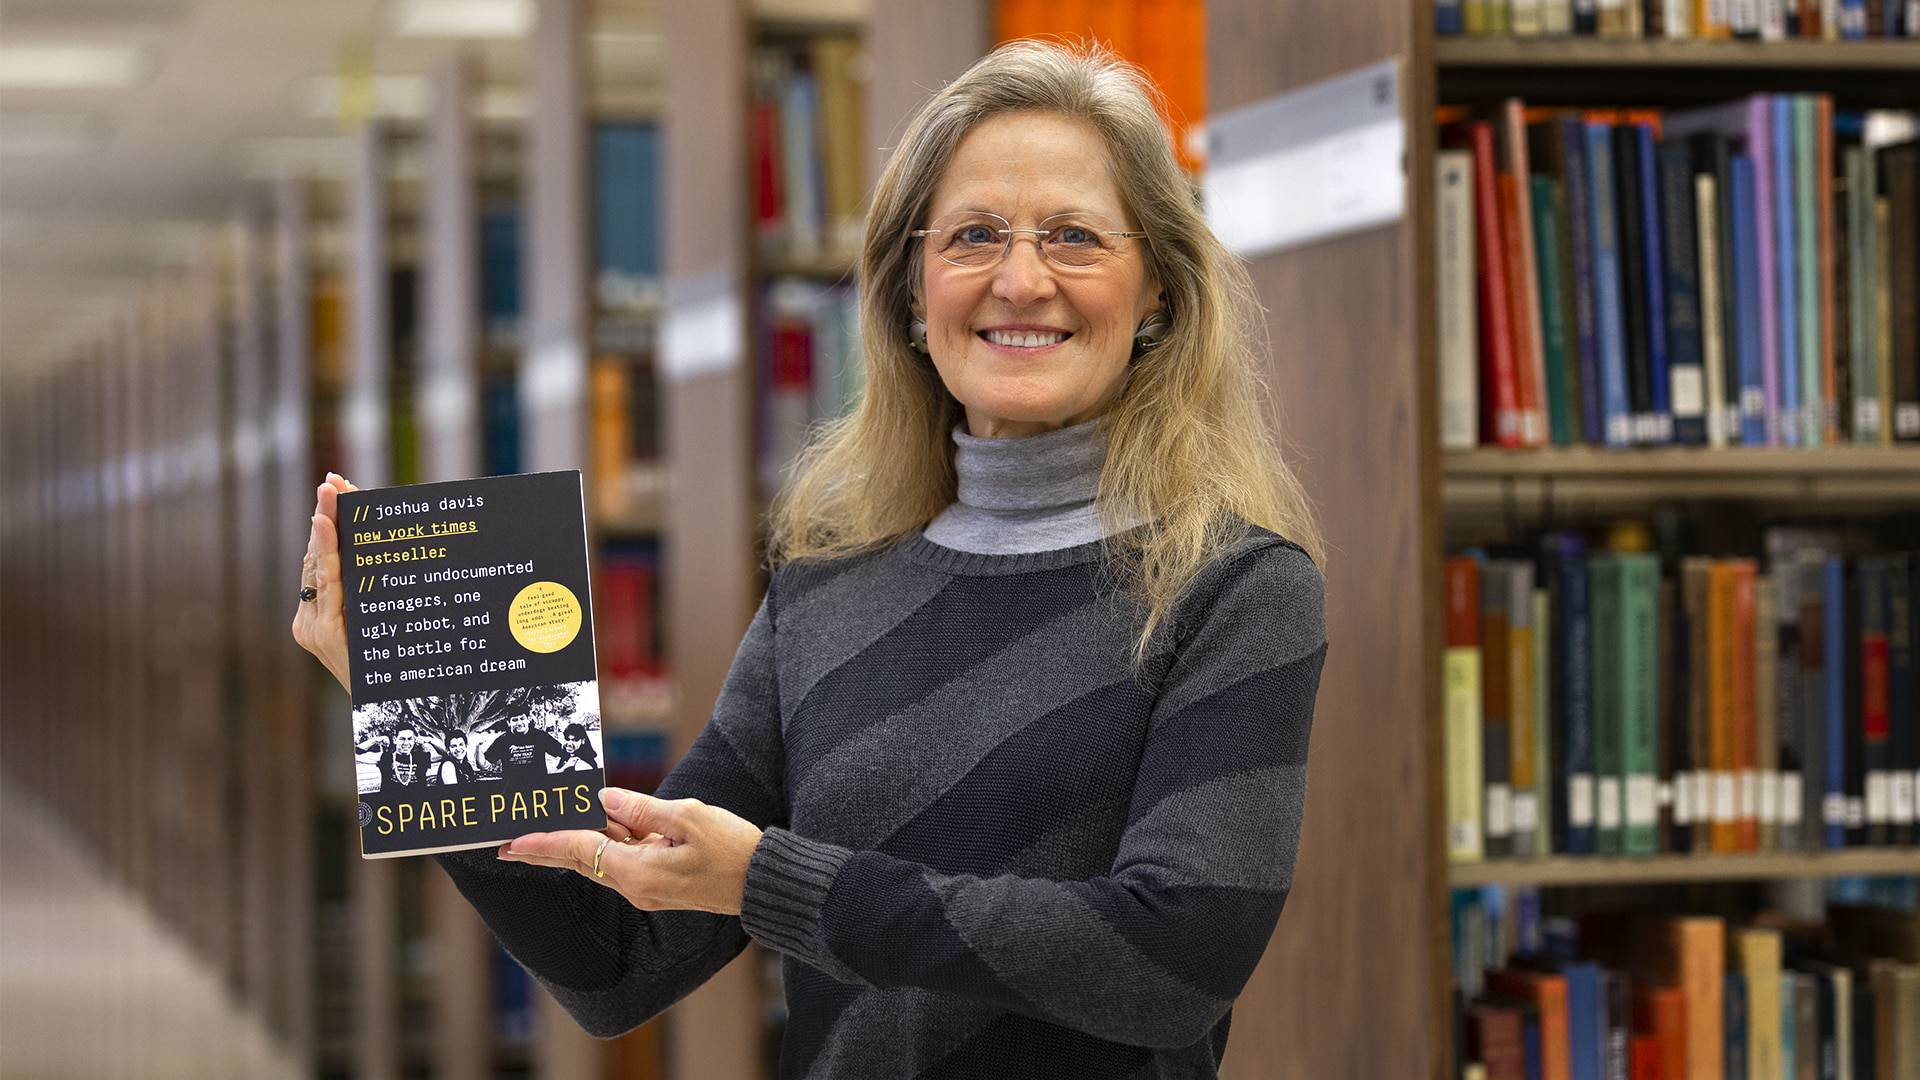 UHCL alumna, former NASA engineer to lead Common Reader discussion